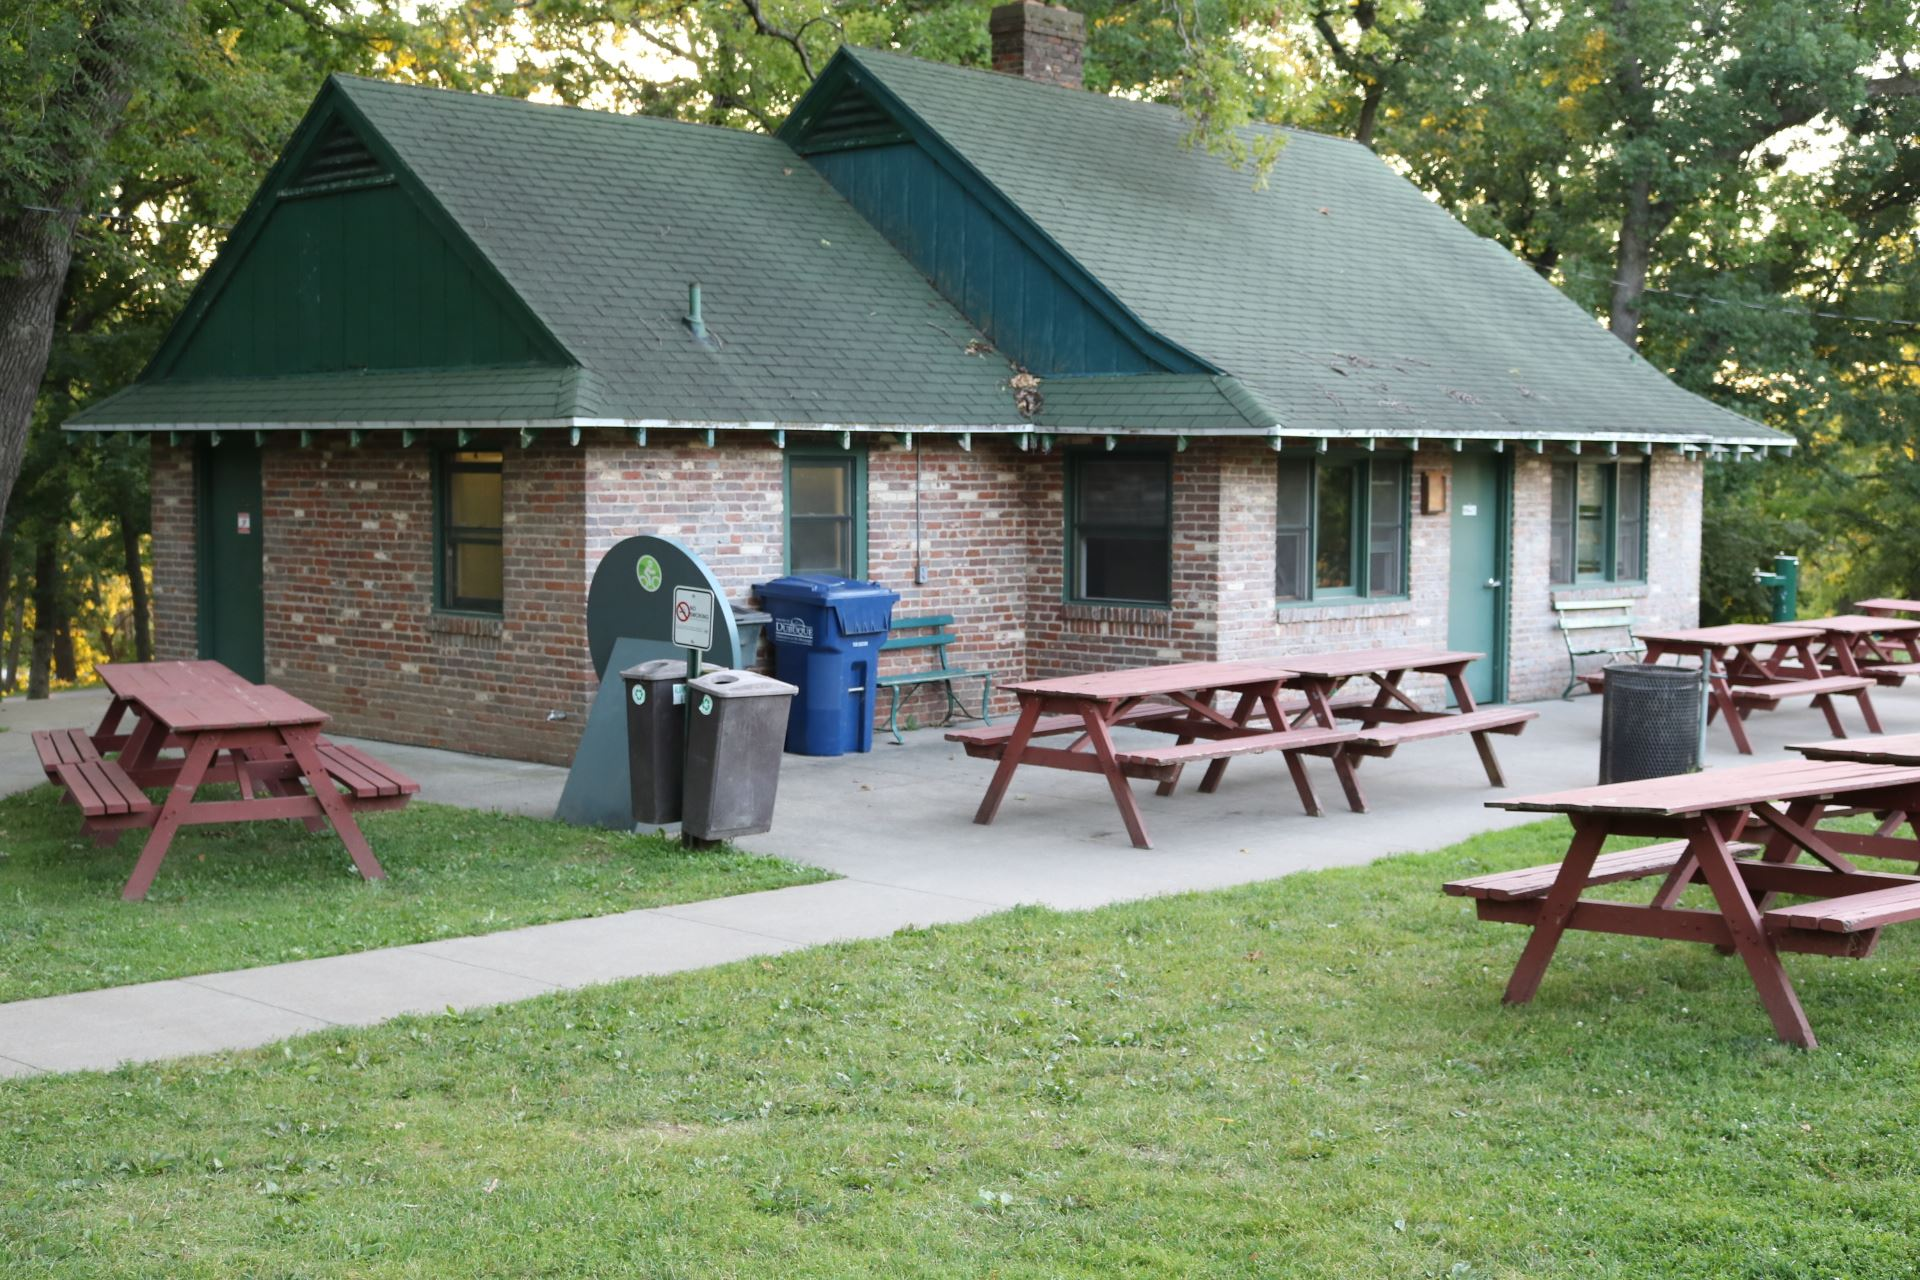 Furhman Enclosed Pavilion seating: 32 people; price: $35.00. Handicapped accessible, 15 amp electric